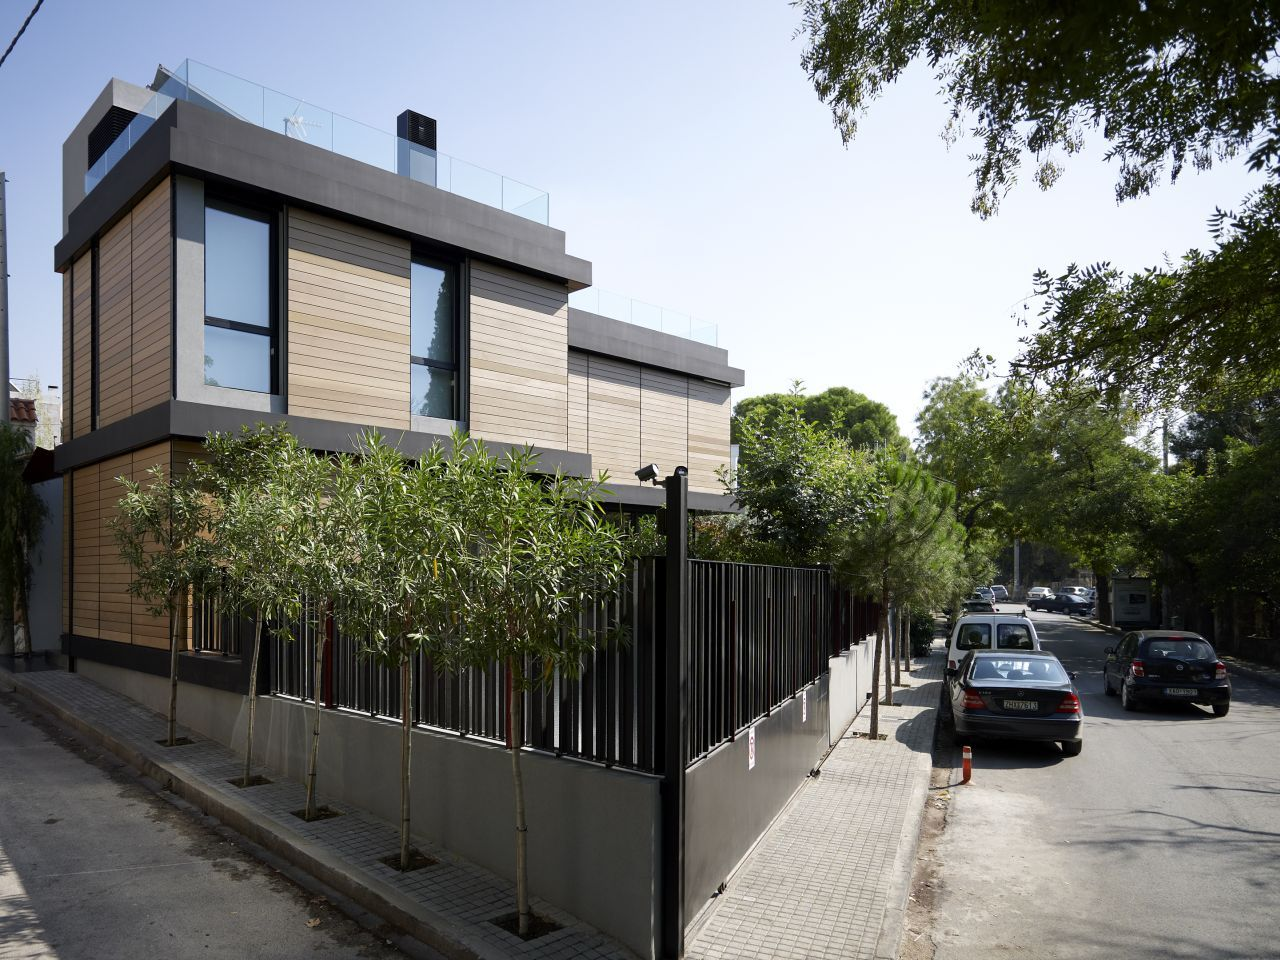 Single Family House in Kifisia by Spacelab (4)